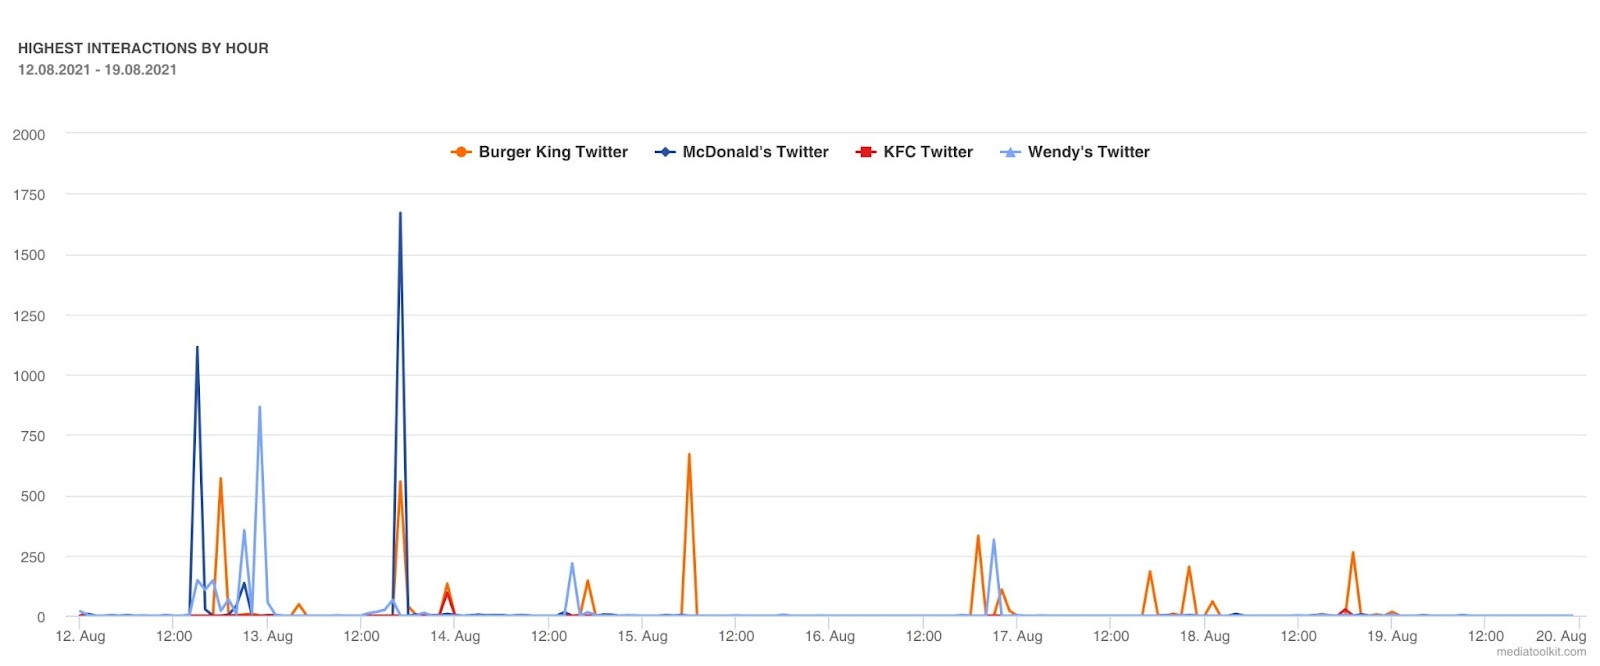 Highest interactions by hour in Twitter competitor analysis